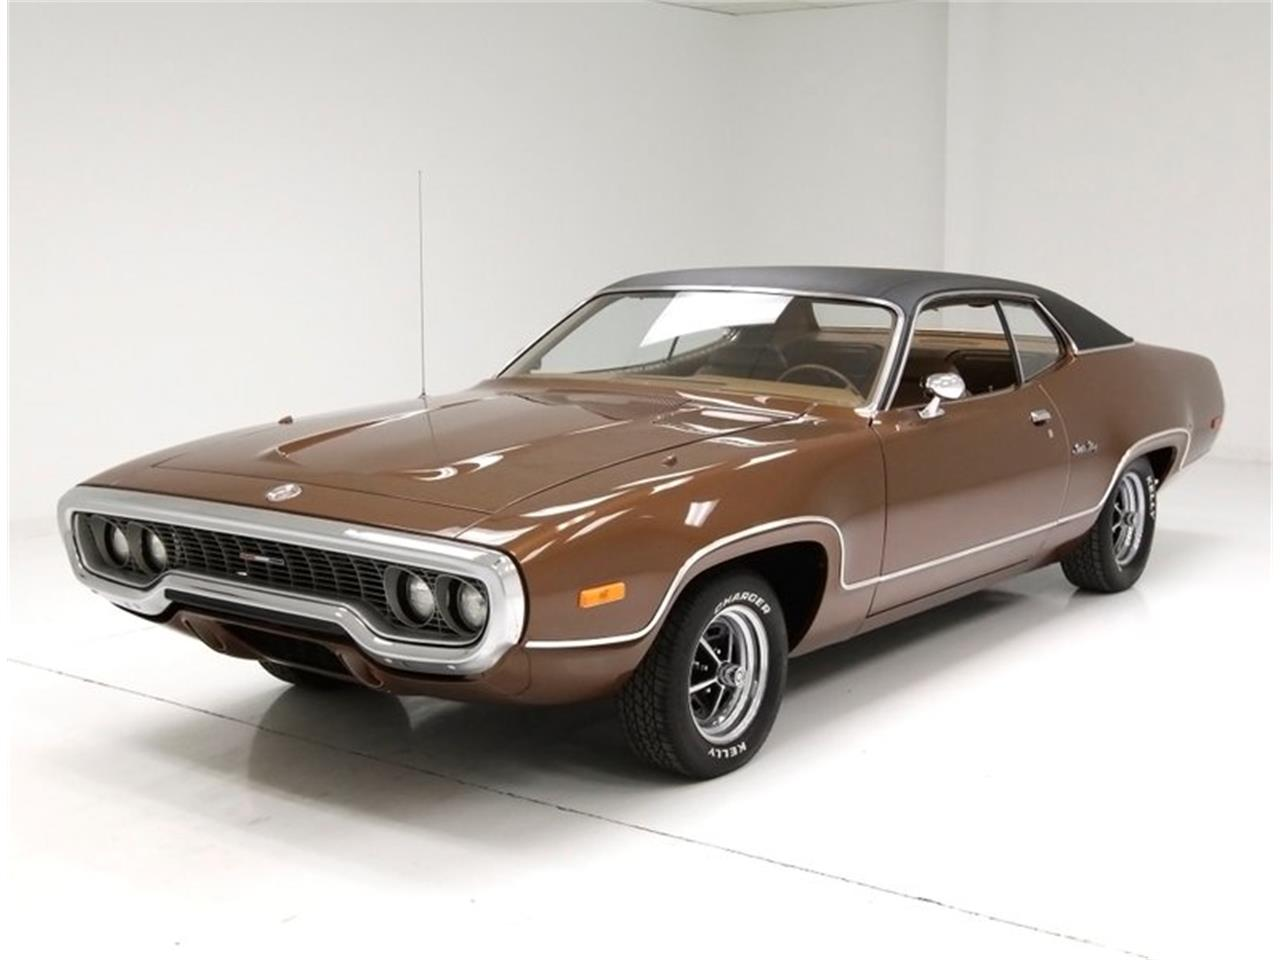 1972 Plymouth Satellite for sale in Morgantown, PA